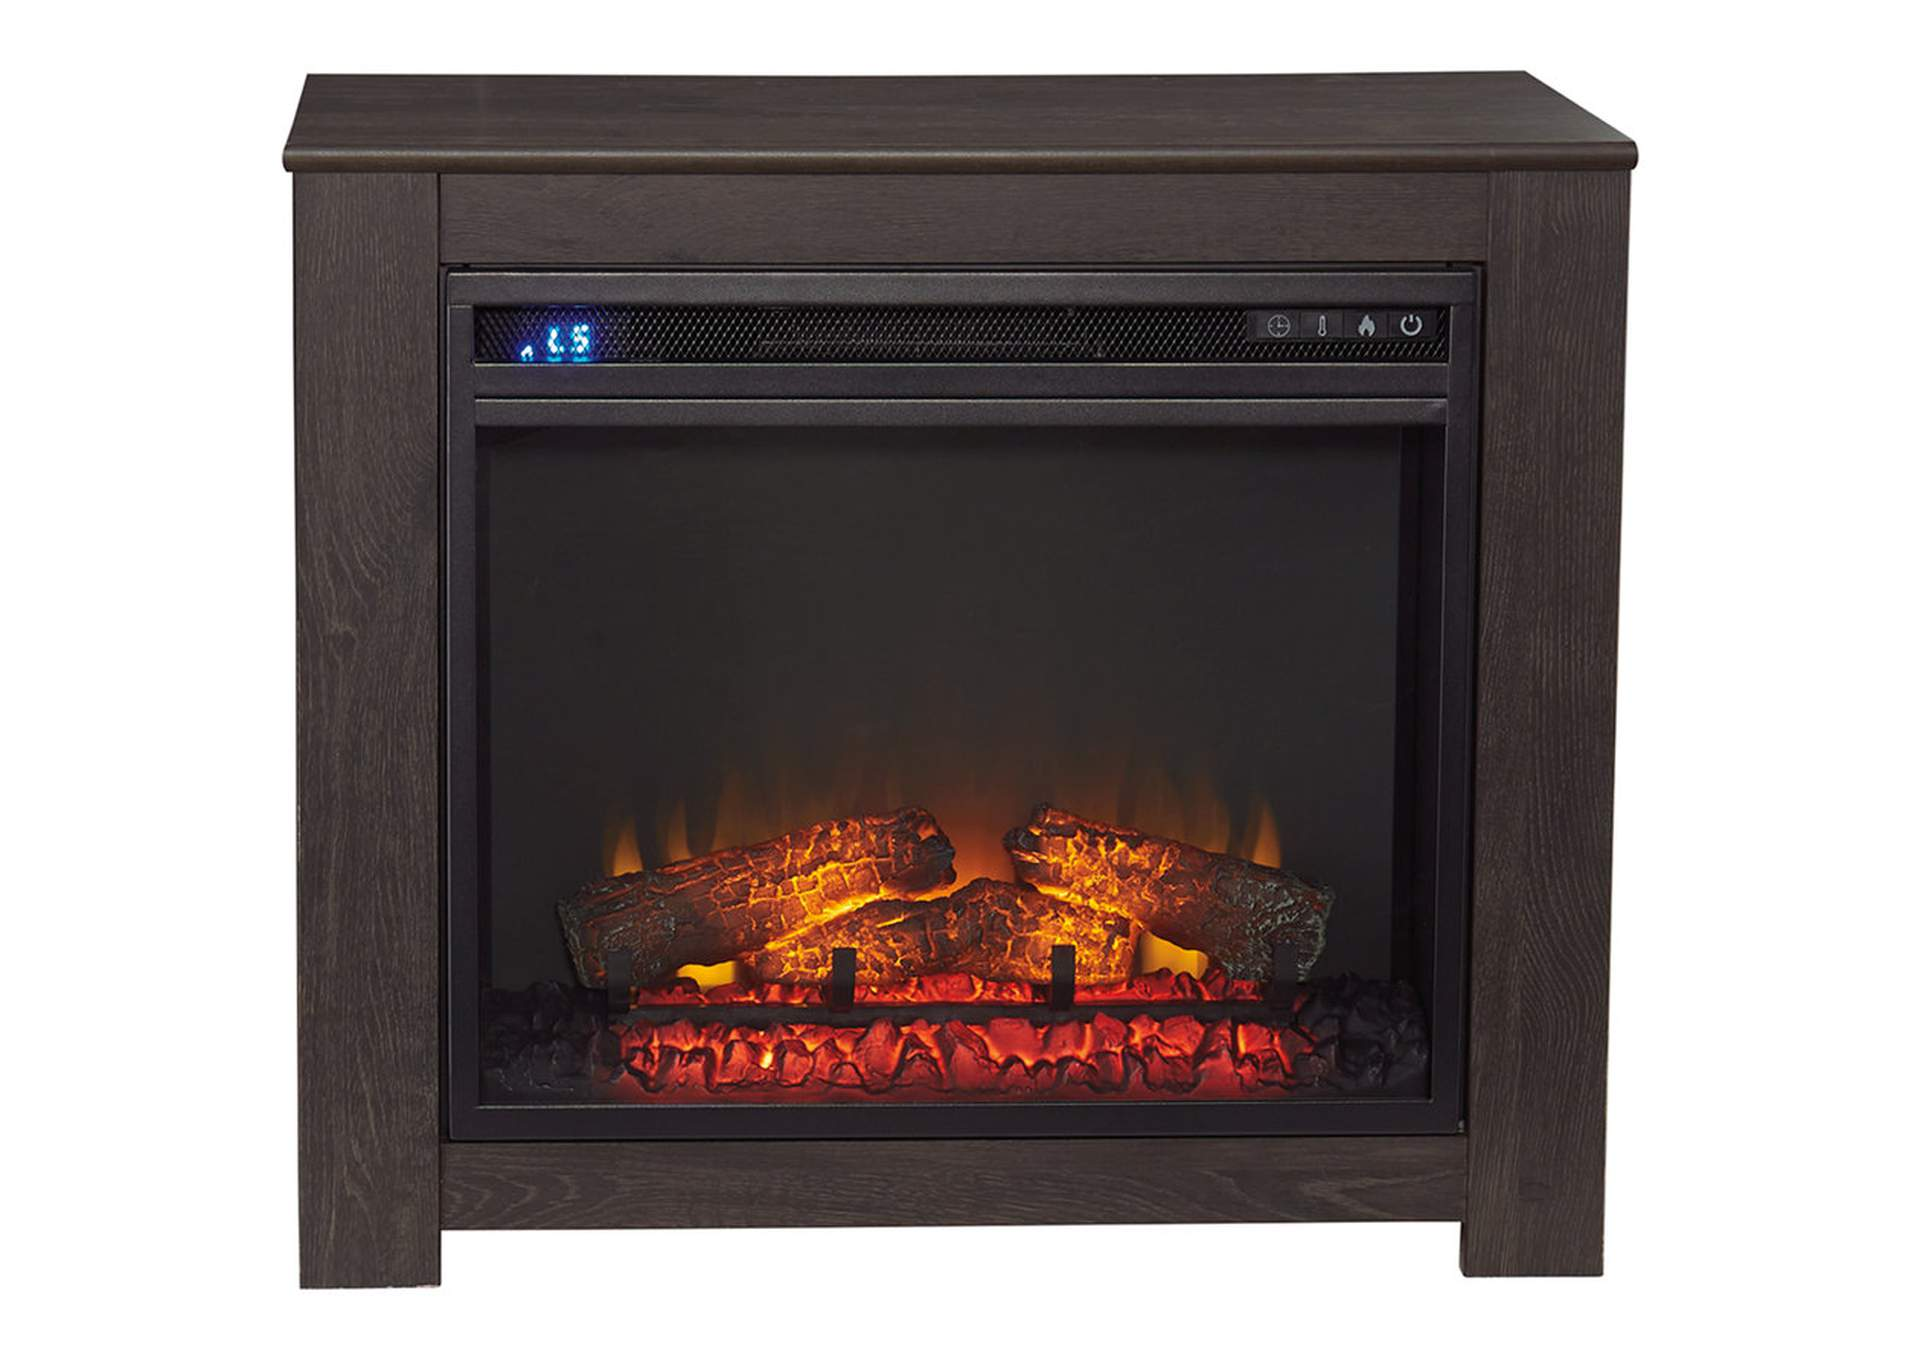 Harlinton Fireplace Mantel,Signature Design By Ashley